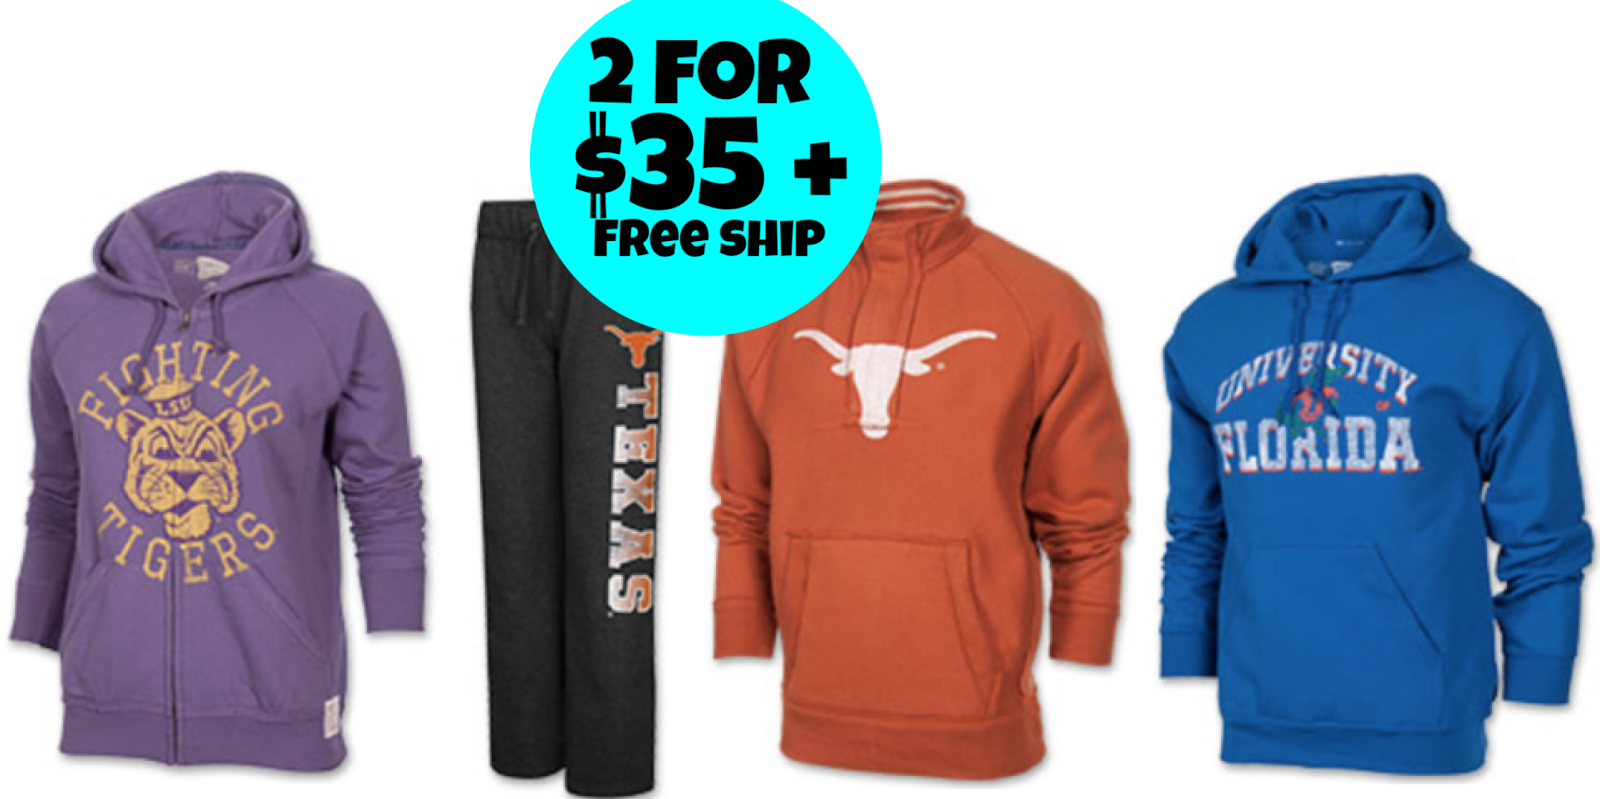 http://www.thebinderladies.com/2014/12/finish-line-two-ncaa-fleece-hoodies.html#.VJLuv4fduyM